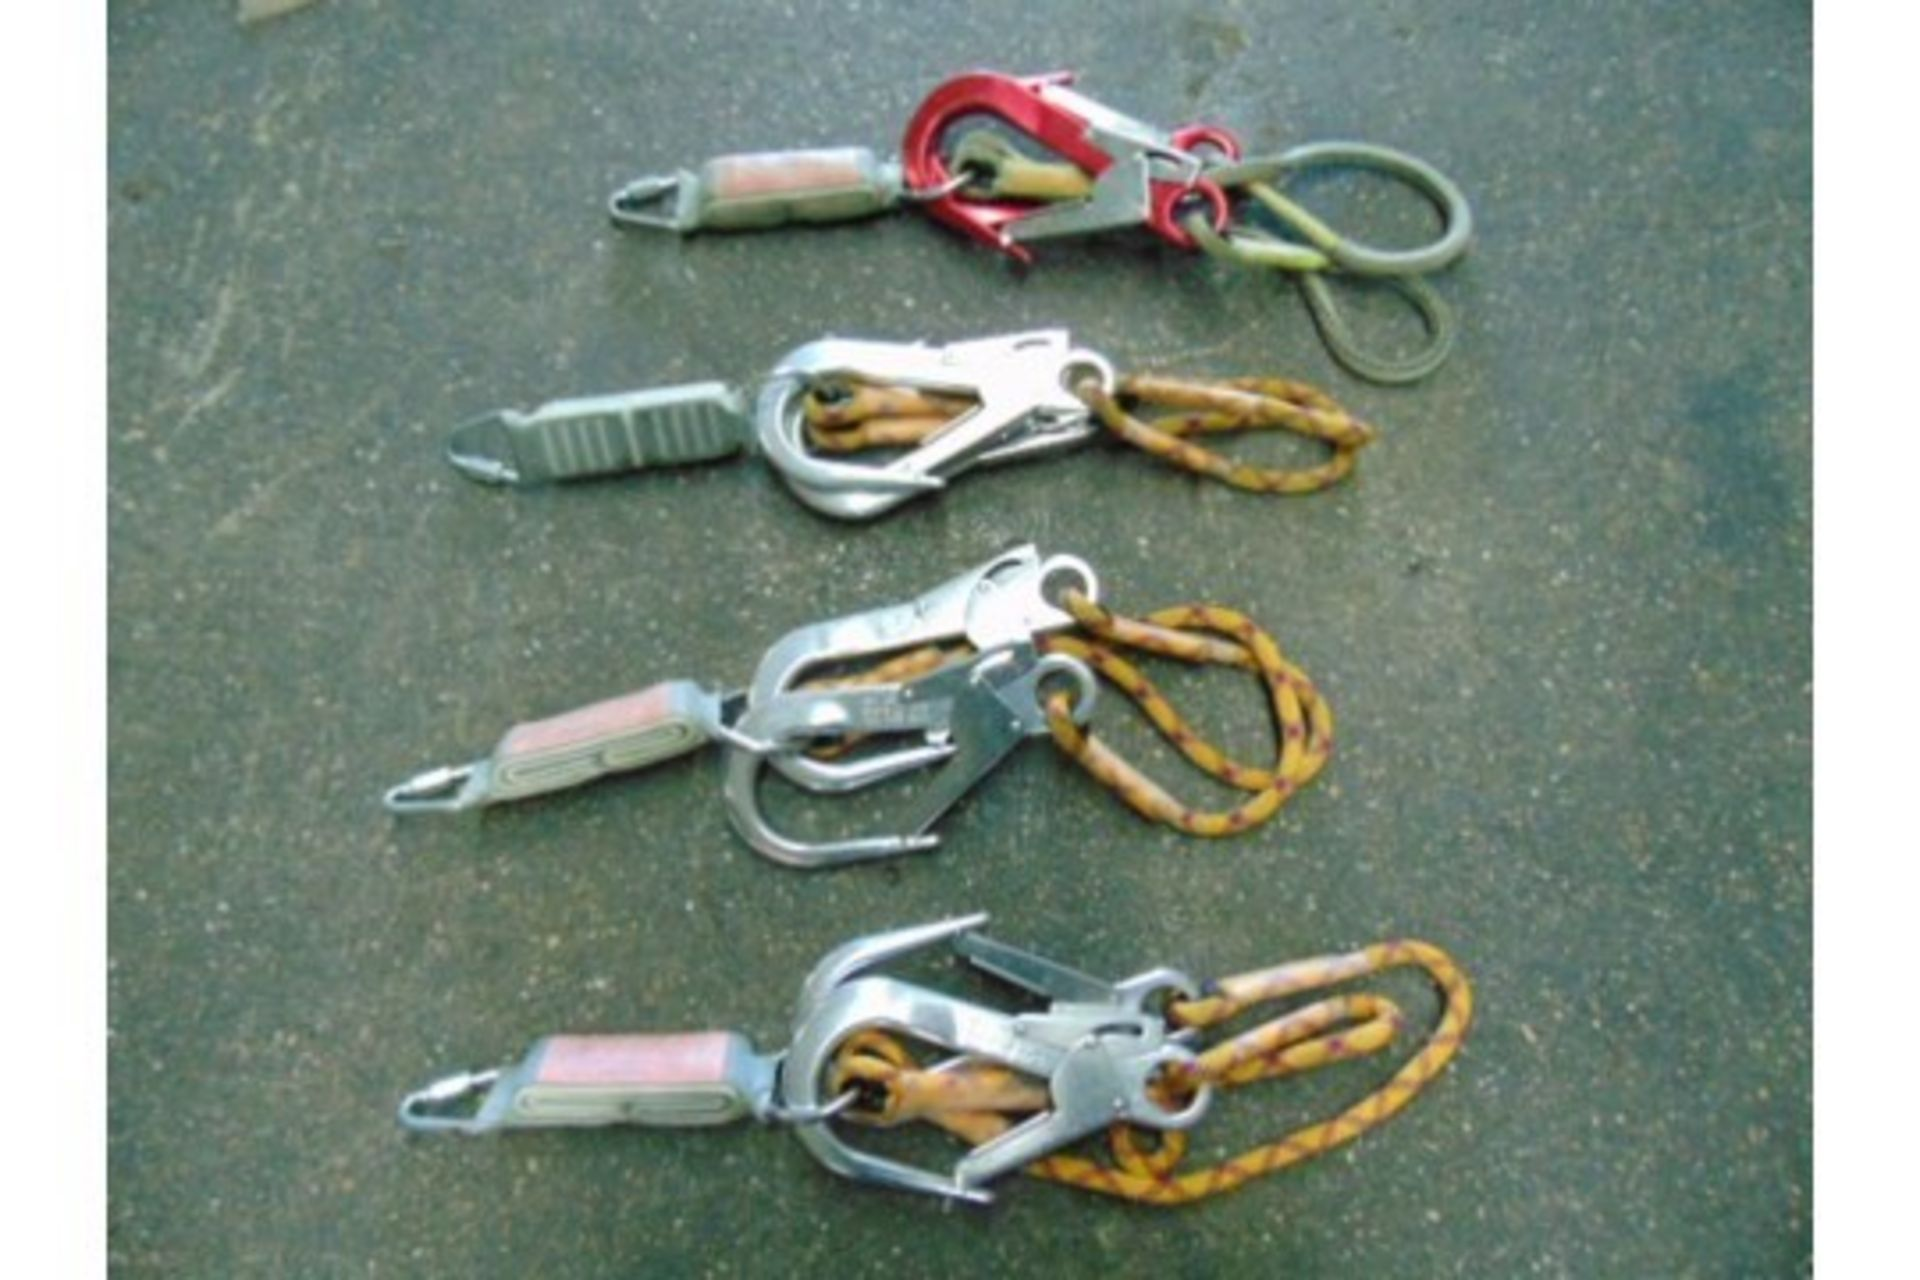 Lot 26572 - 4 x Heightec Twin Fall Arrest Lanyard with Oval Scaff Hooks